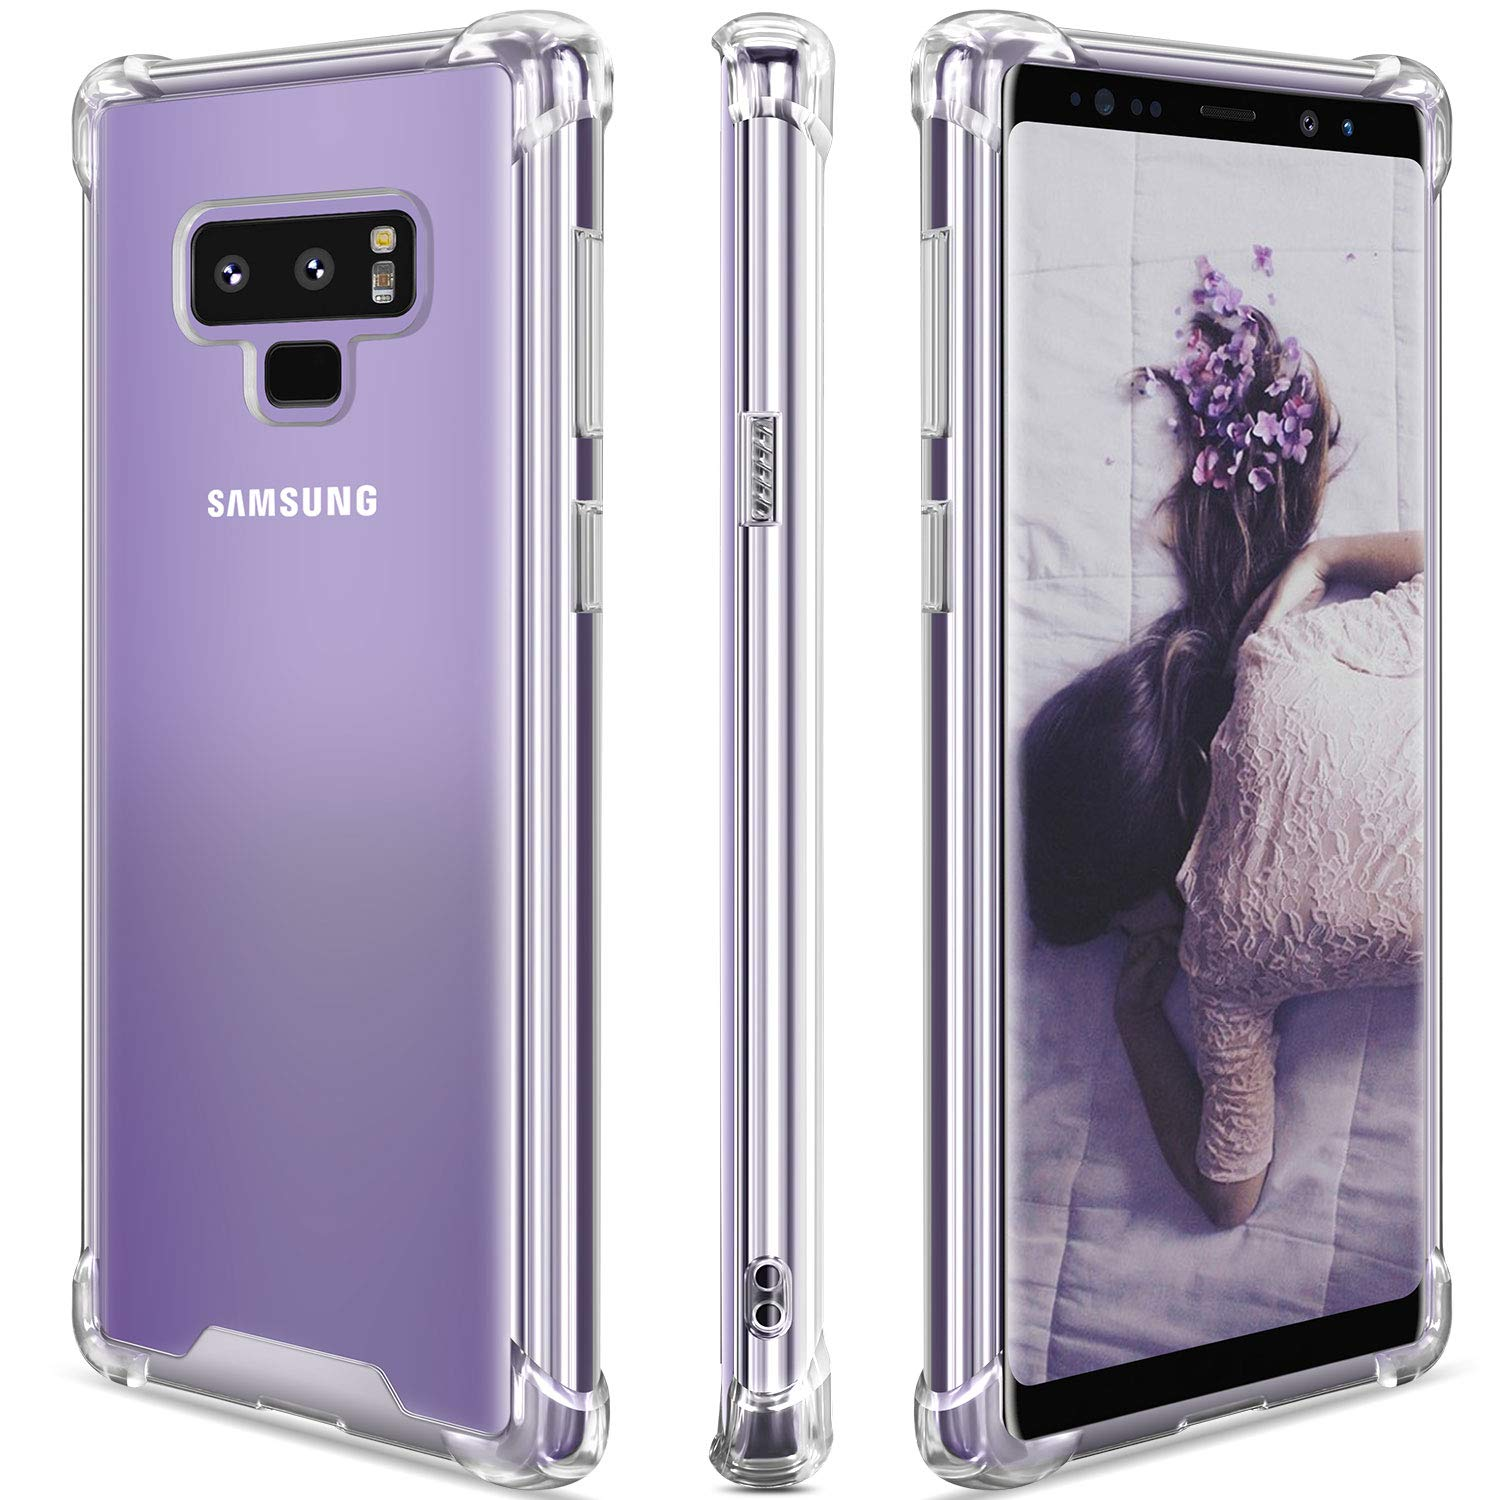 SANKMI Samsung Galaxy Note 9 Case,Clear Note 9 Case Shockproof TPU Bumper Cases Non Slip Scratch Resistant PC Hard Back Protective Case Cover for Galaxy Note 9 - Clear